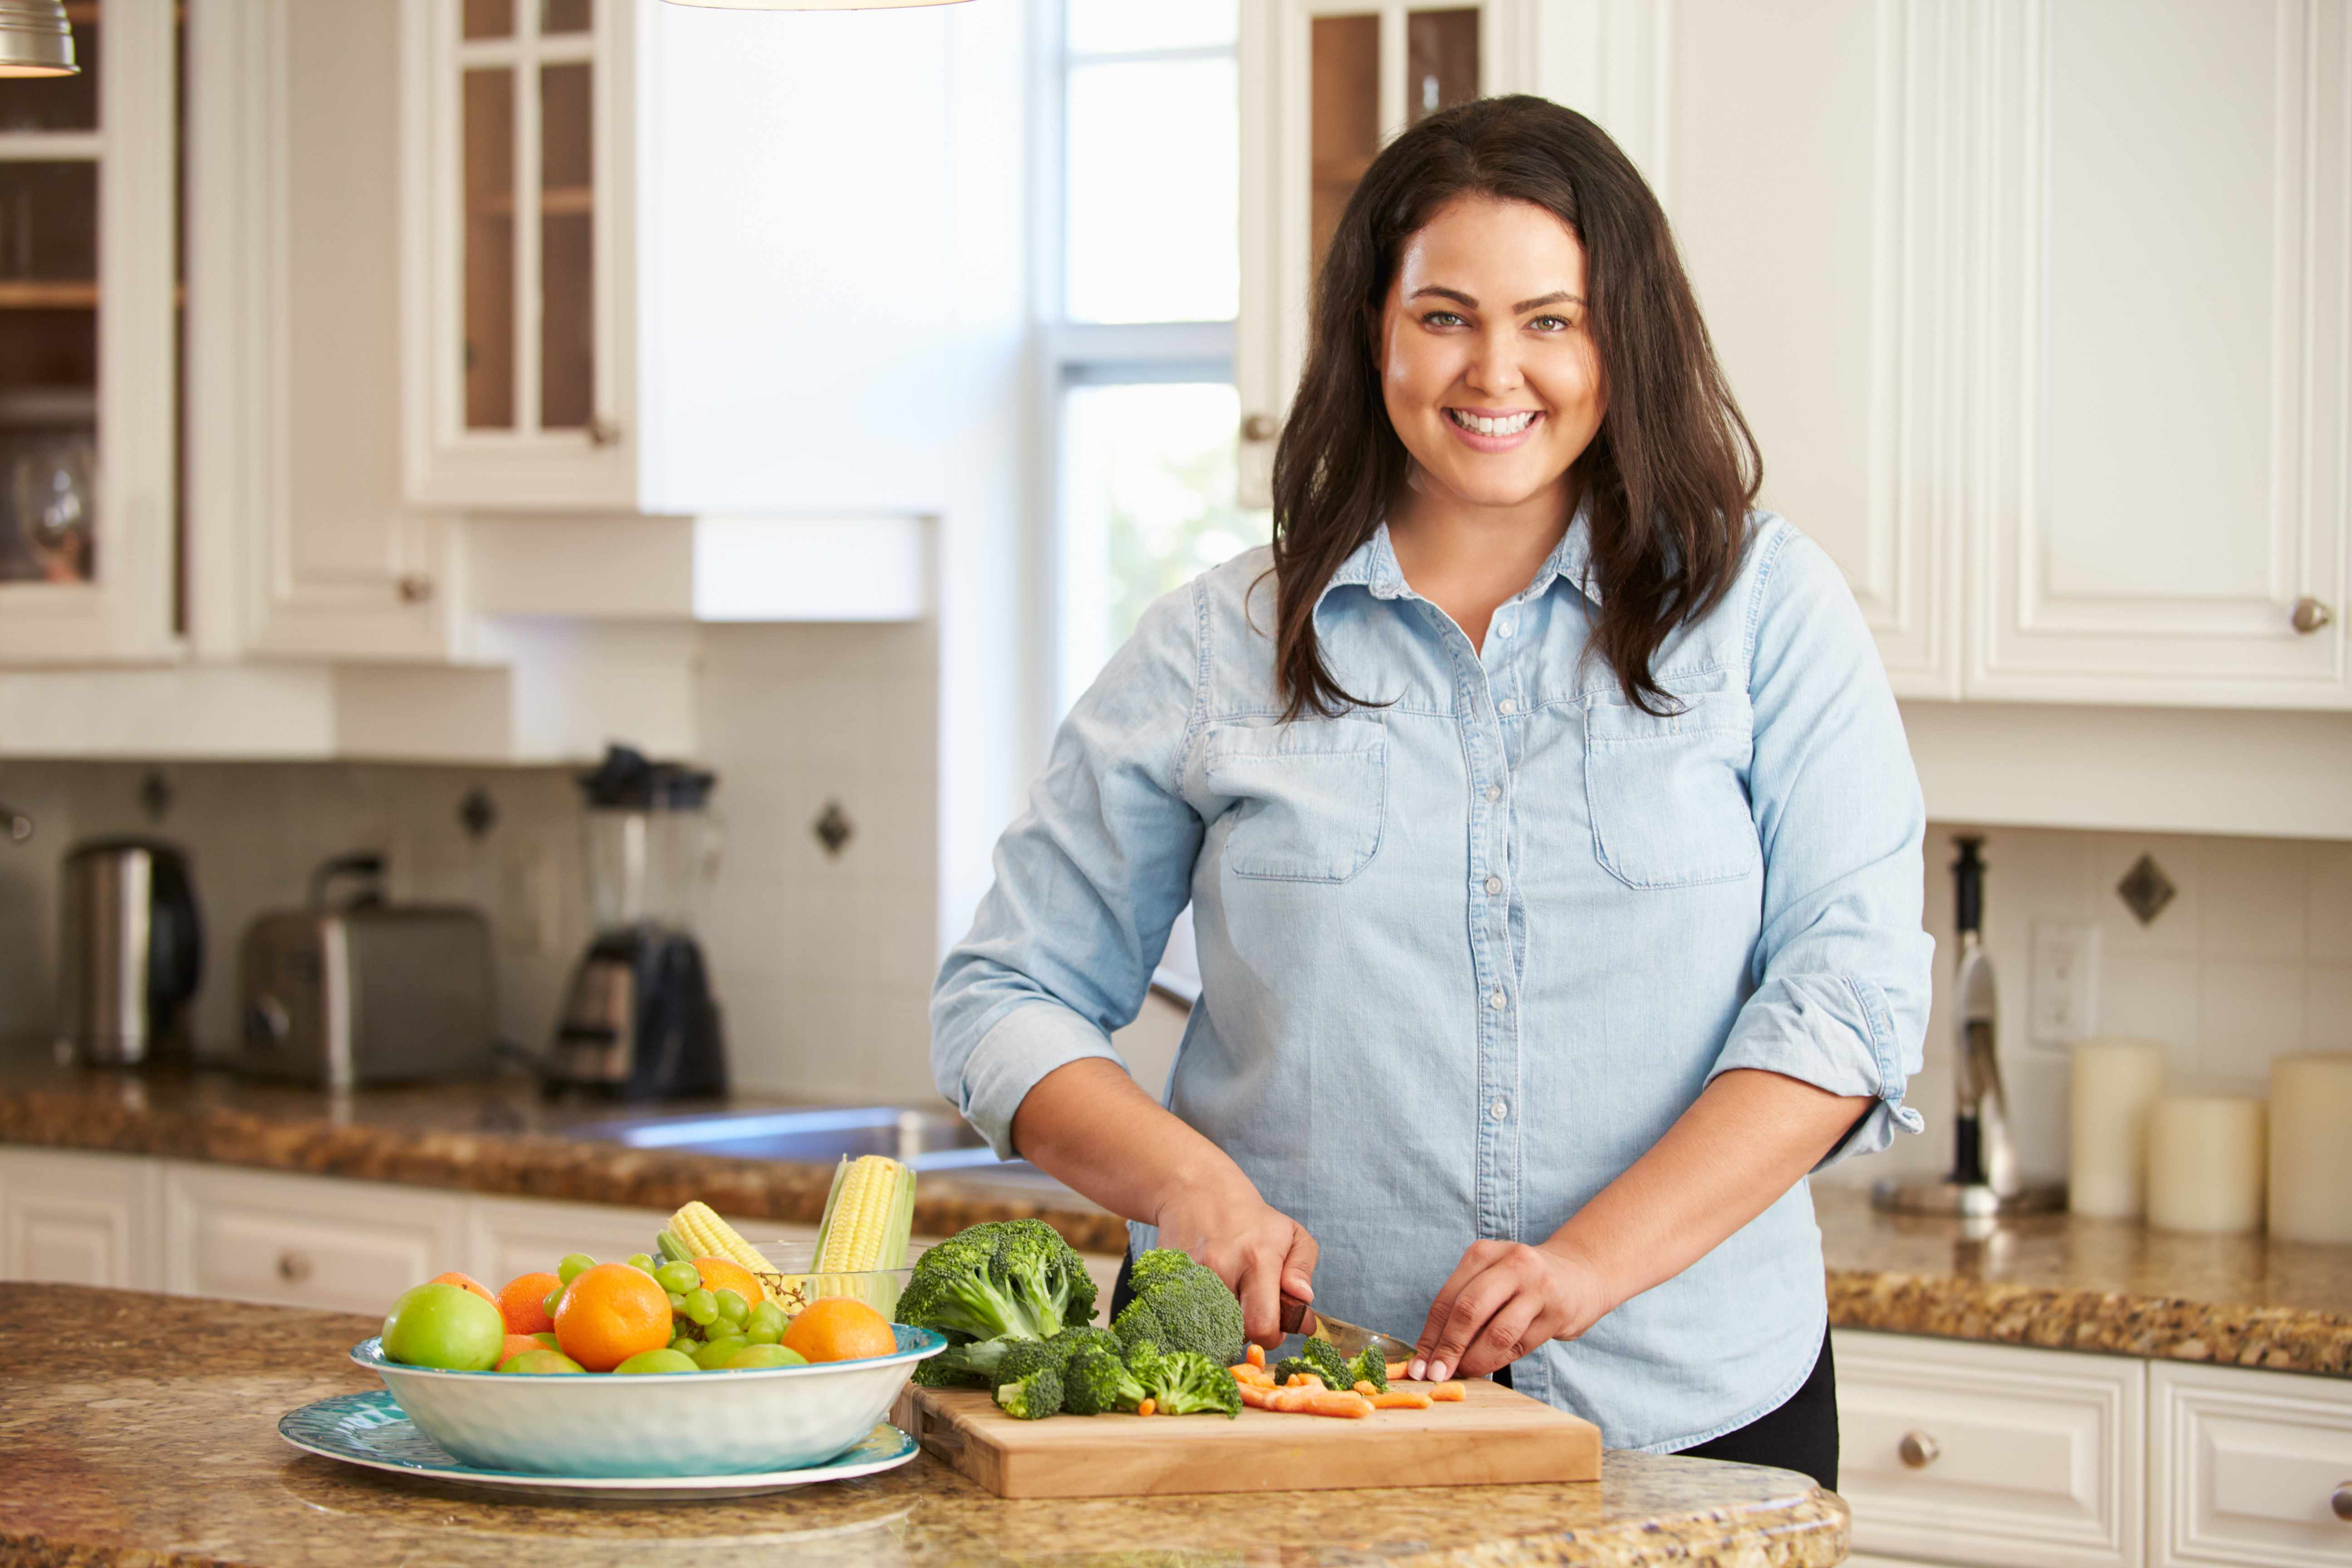 woman in kitchen cutting up healthy vegetables